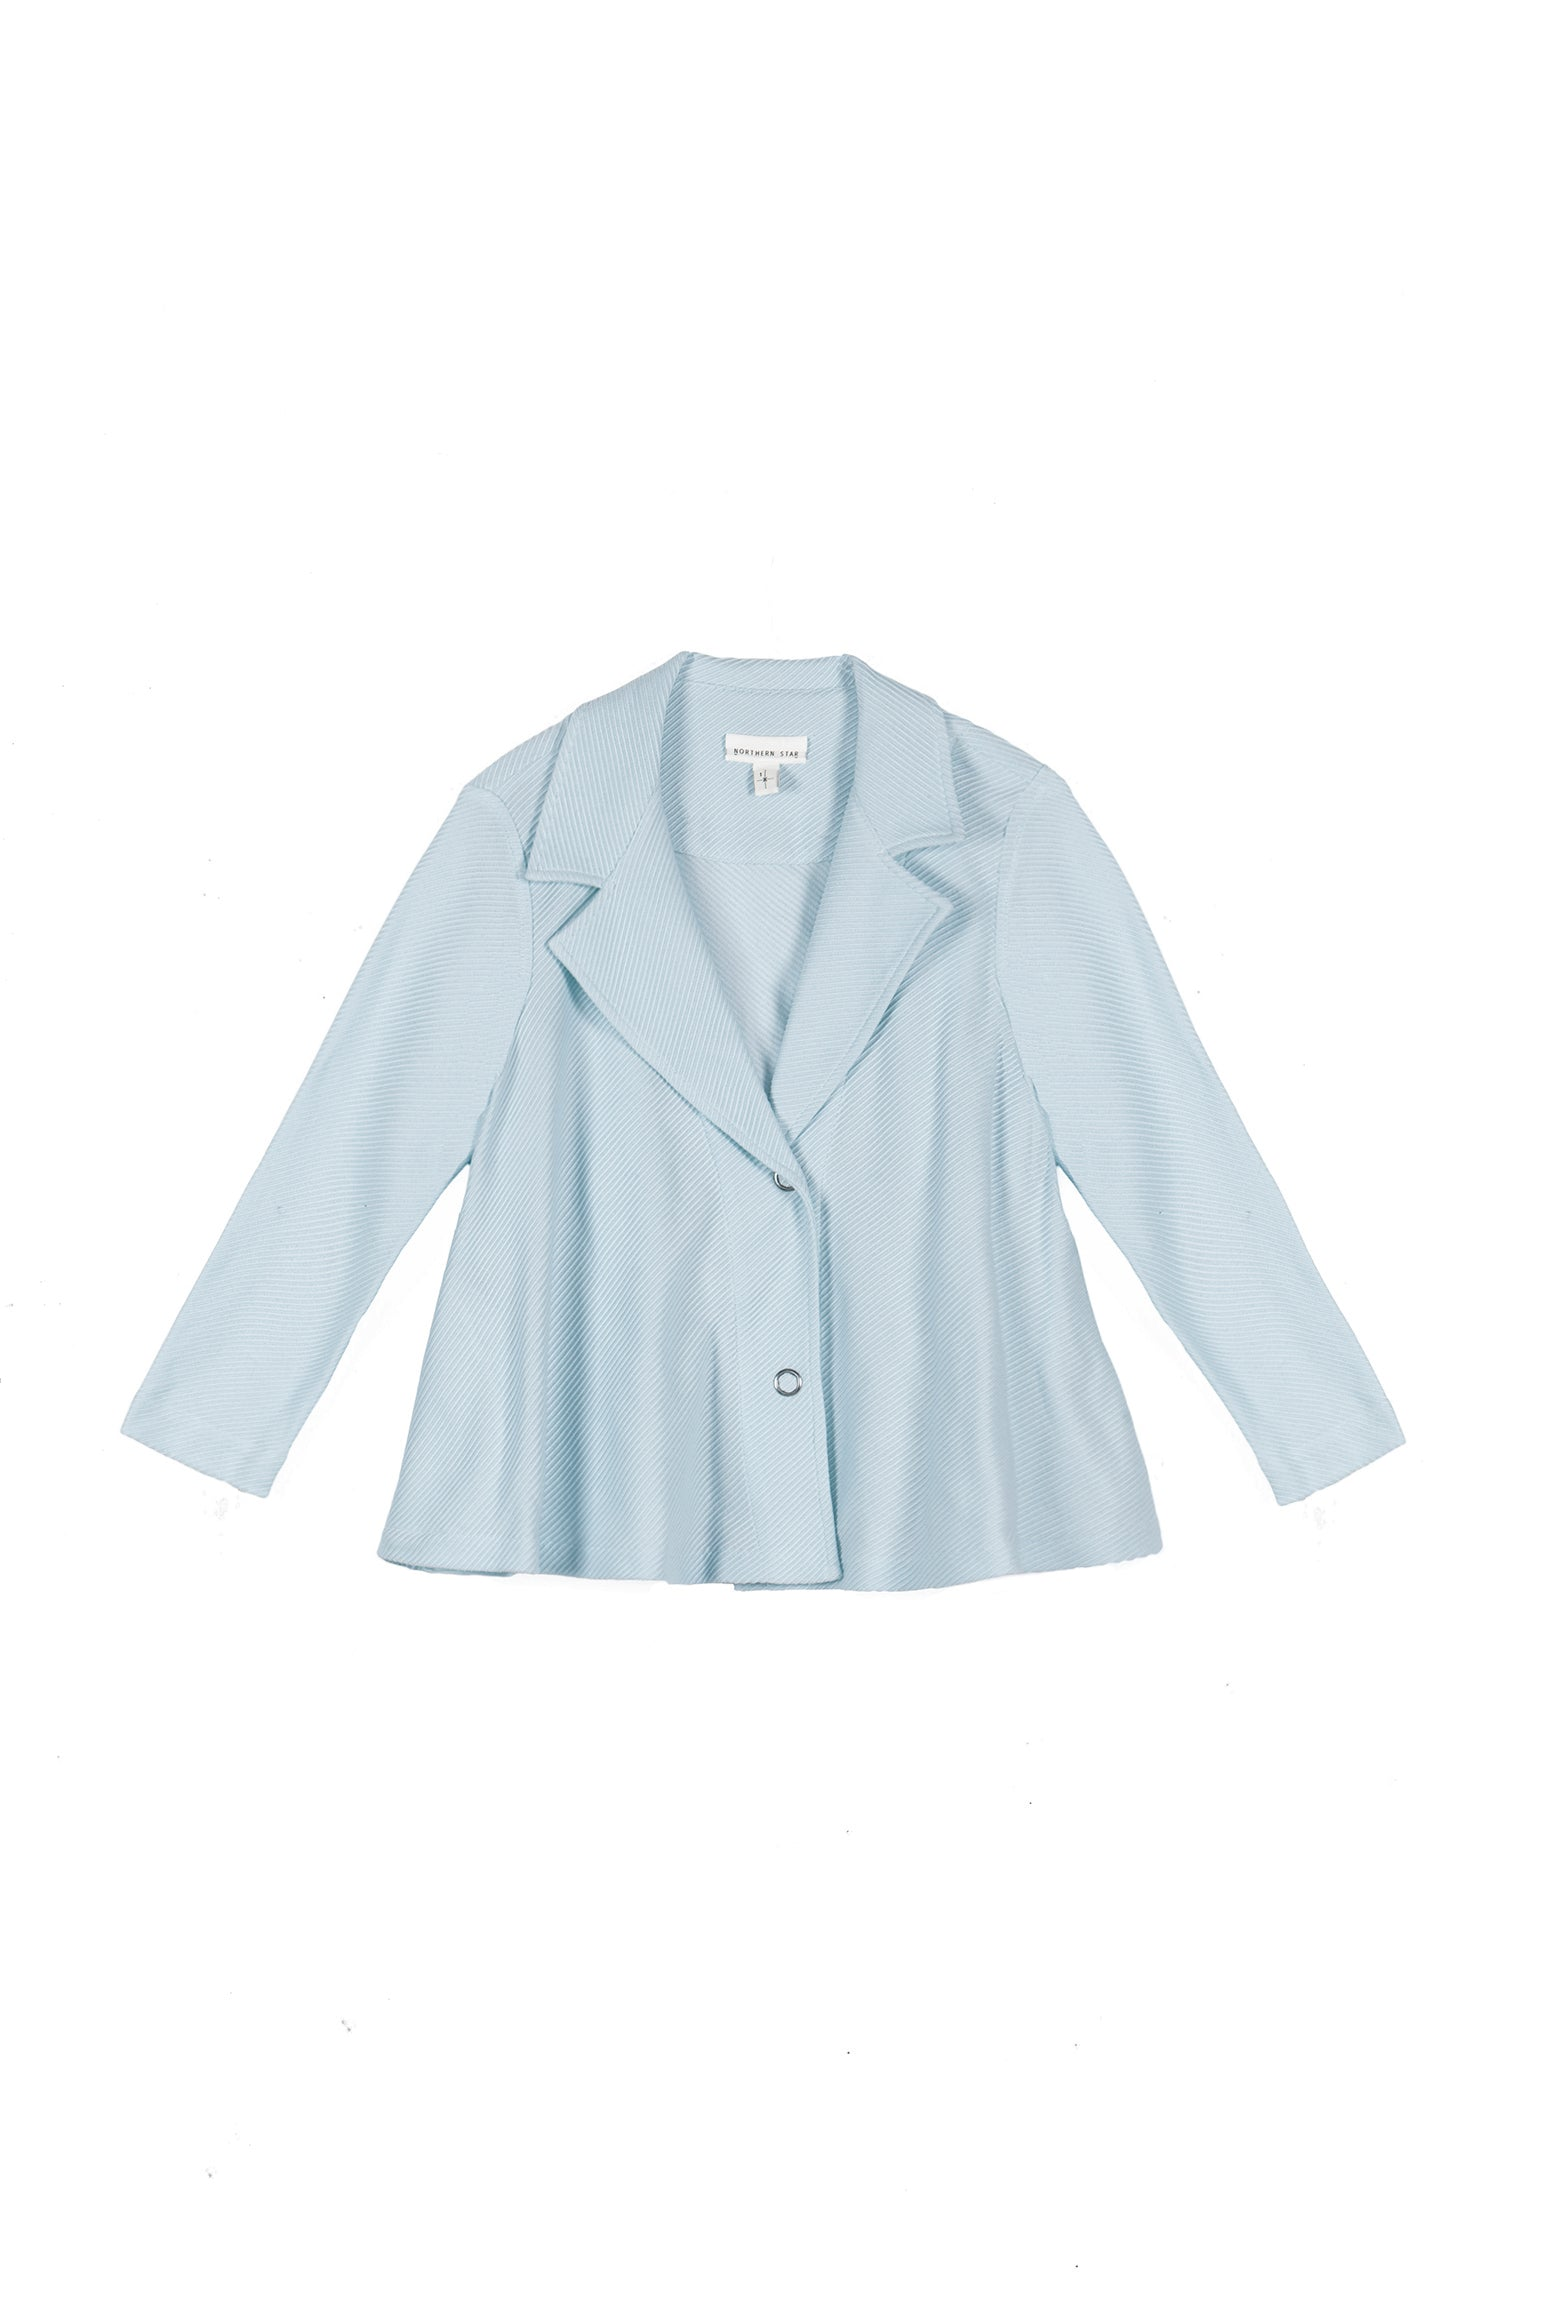 FW cloche blazer jacket